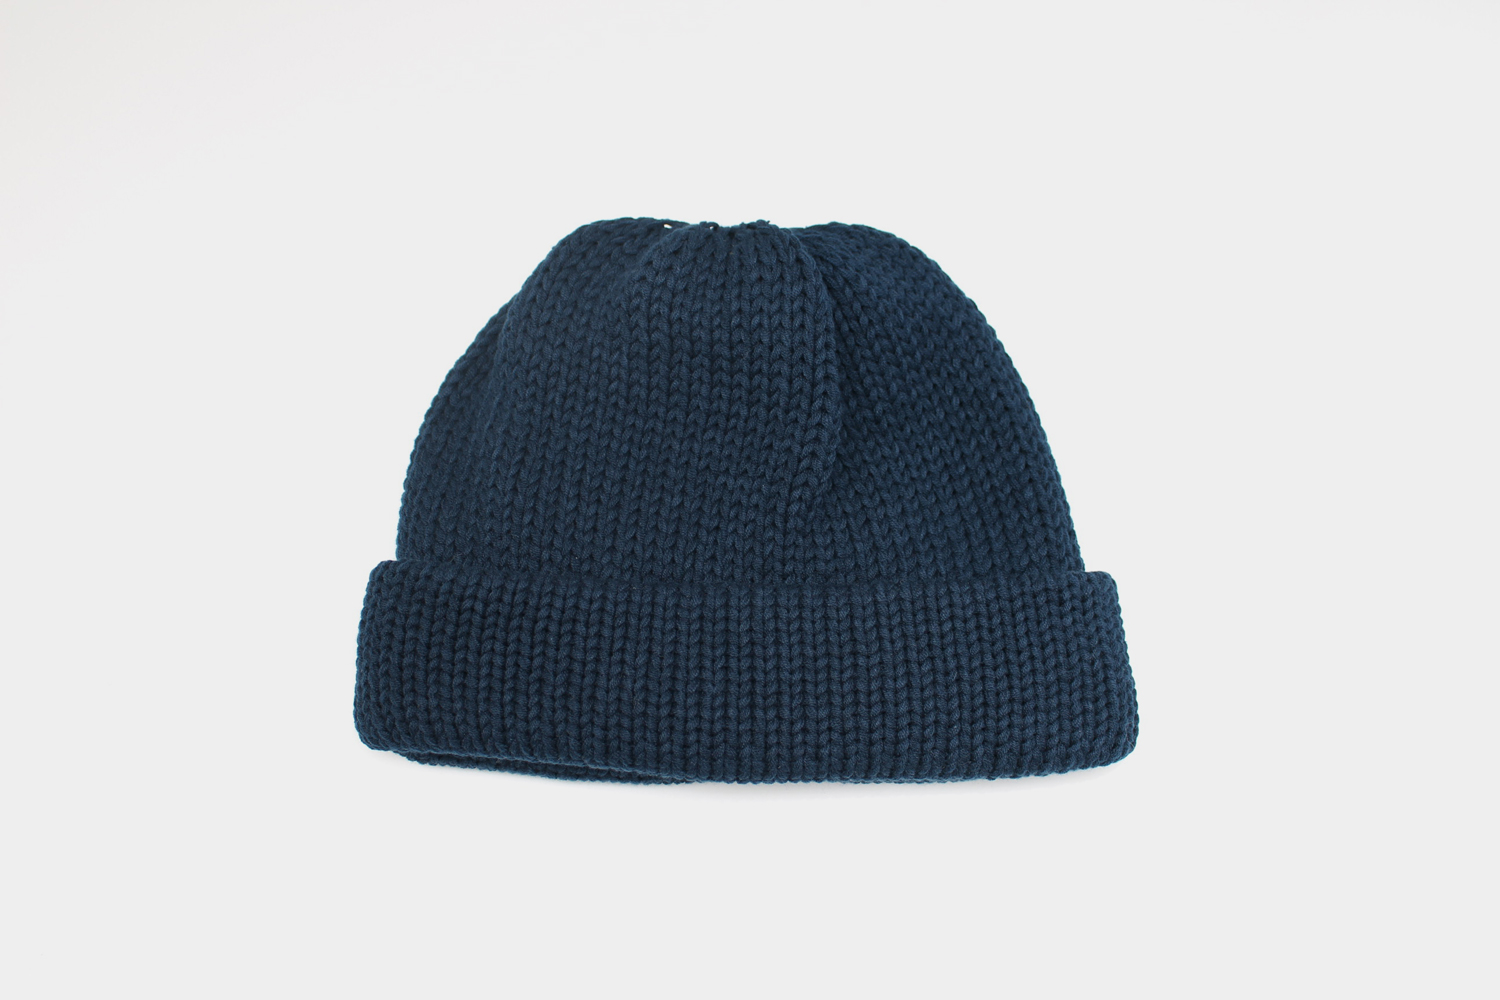 COMESANDGOES_STANDARDKNIT_NAVY_7500_1